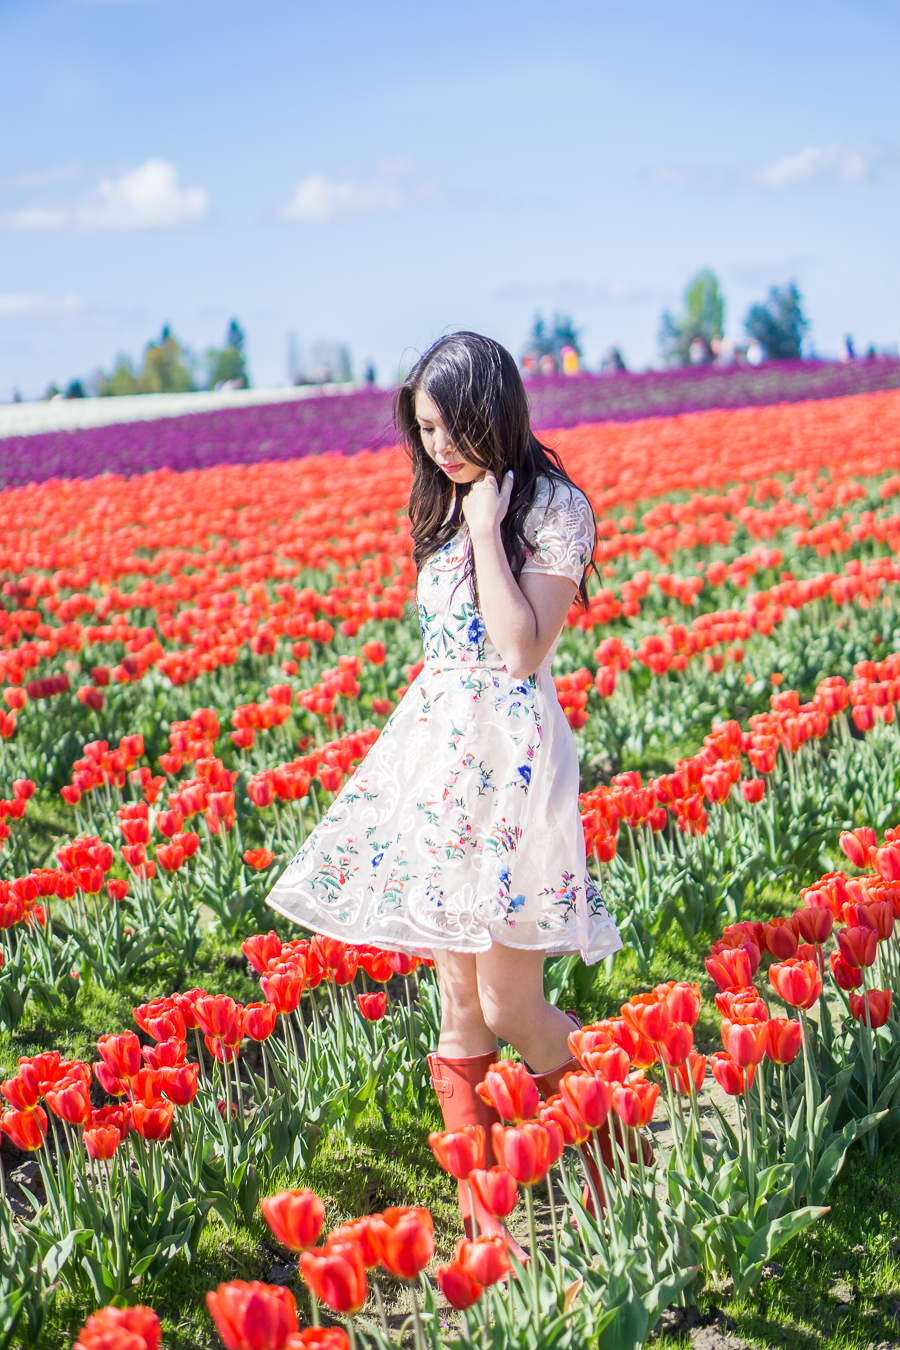 skagit tulip fields washington, floral dress chicwish garden embroidered beige organza dress, red rain boots outfit